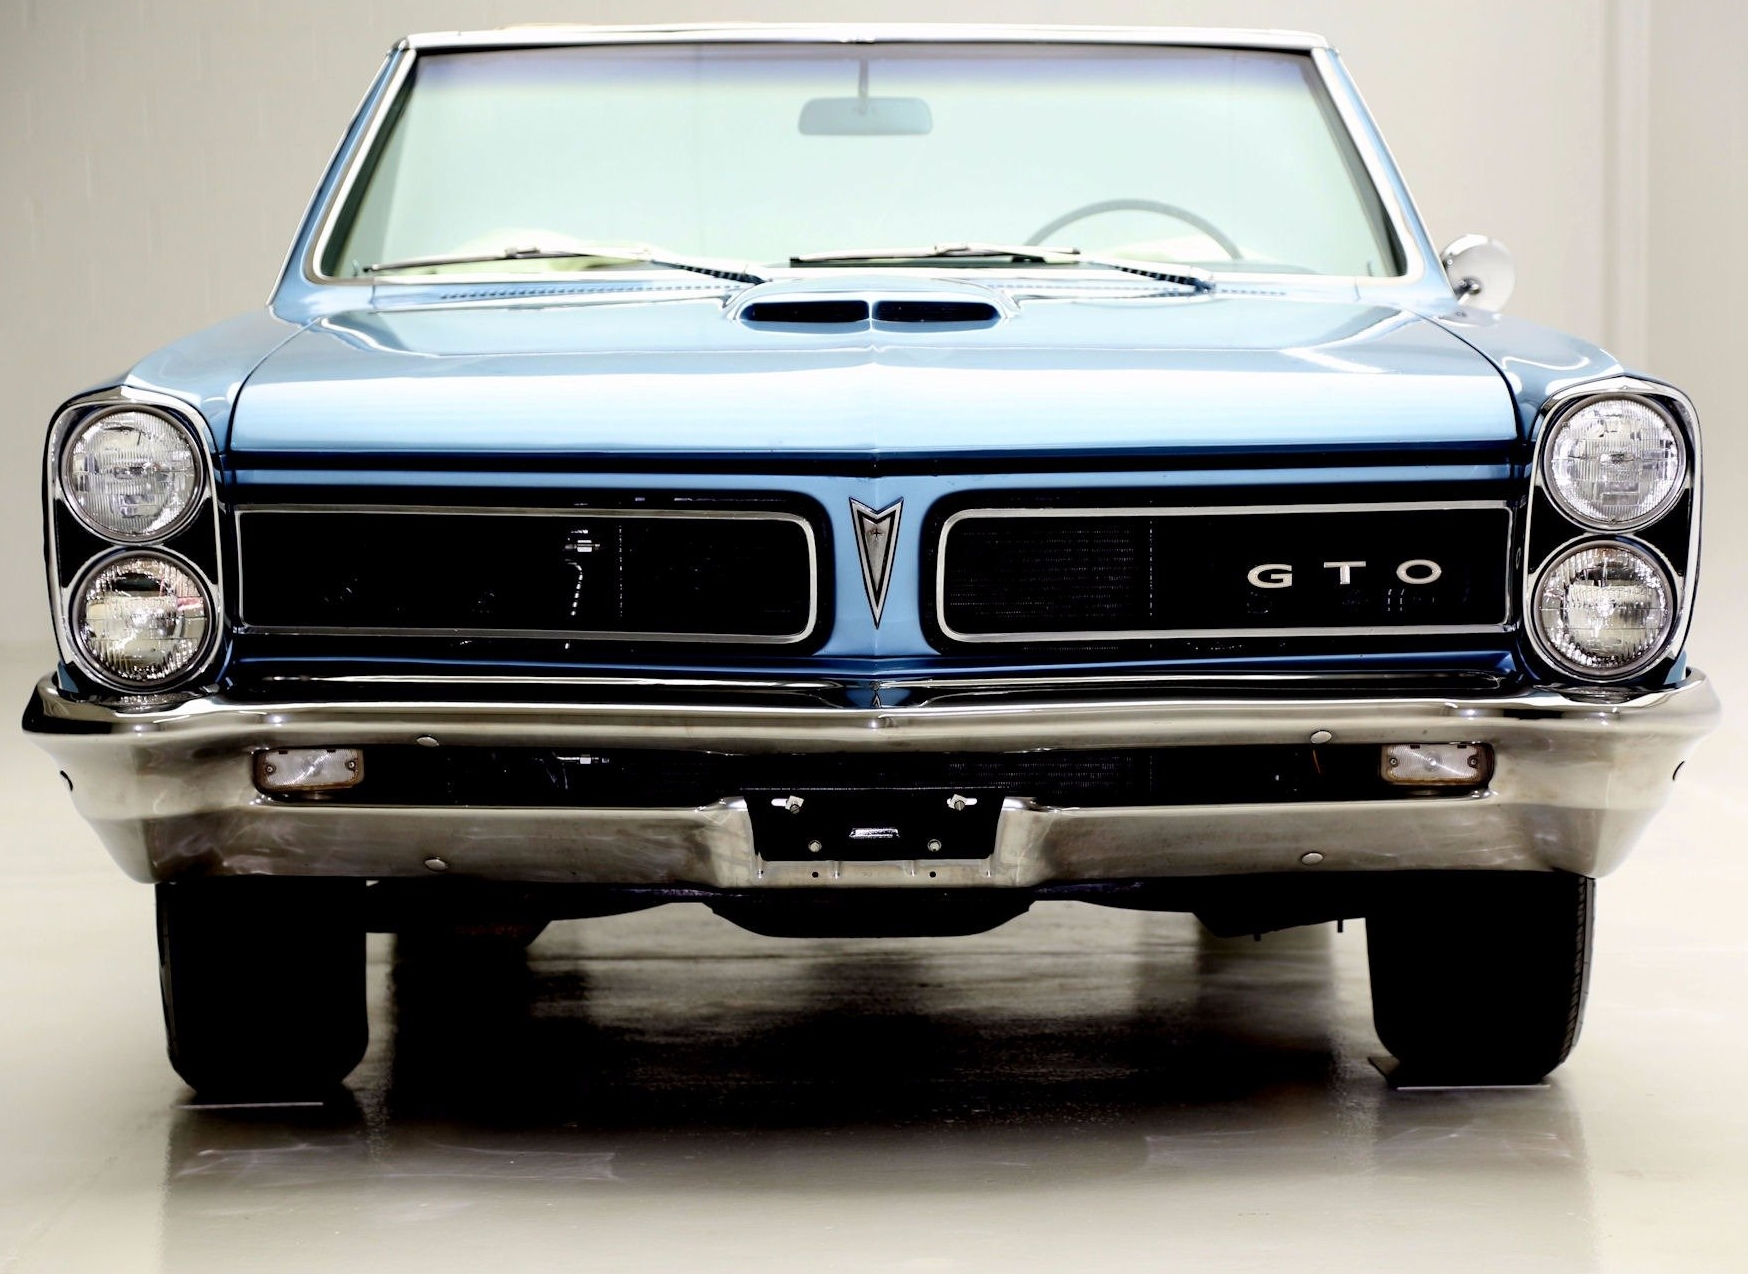 Pontiac GTO History   Part 1  1964 1967   Old Car Memories The GTO was the cornerstone of Pontiac performance  It was a car that  created the muscle car segment and hit a bullseye with the wants and needs  of the